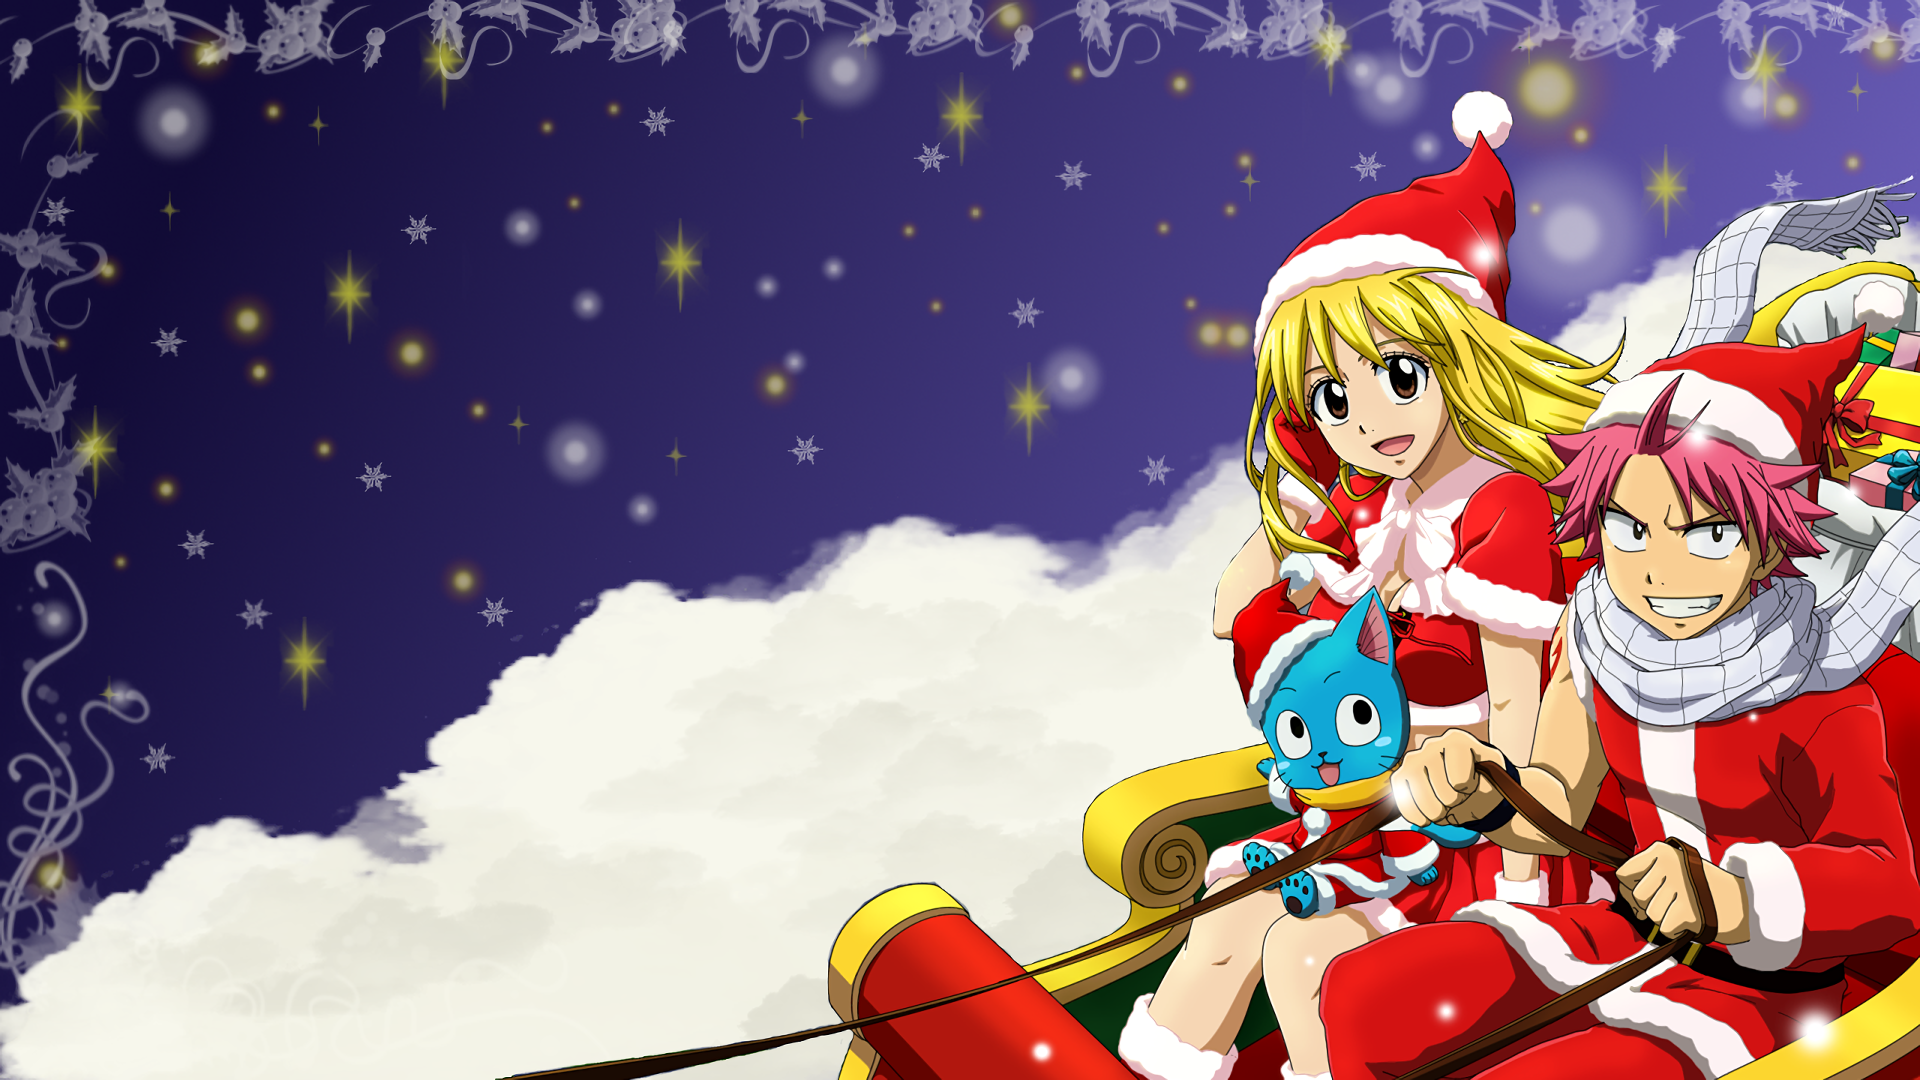 fairy tail anime christmas wallpaper -#main